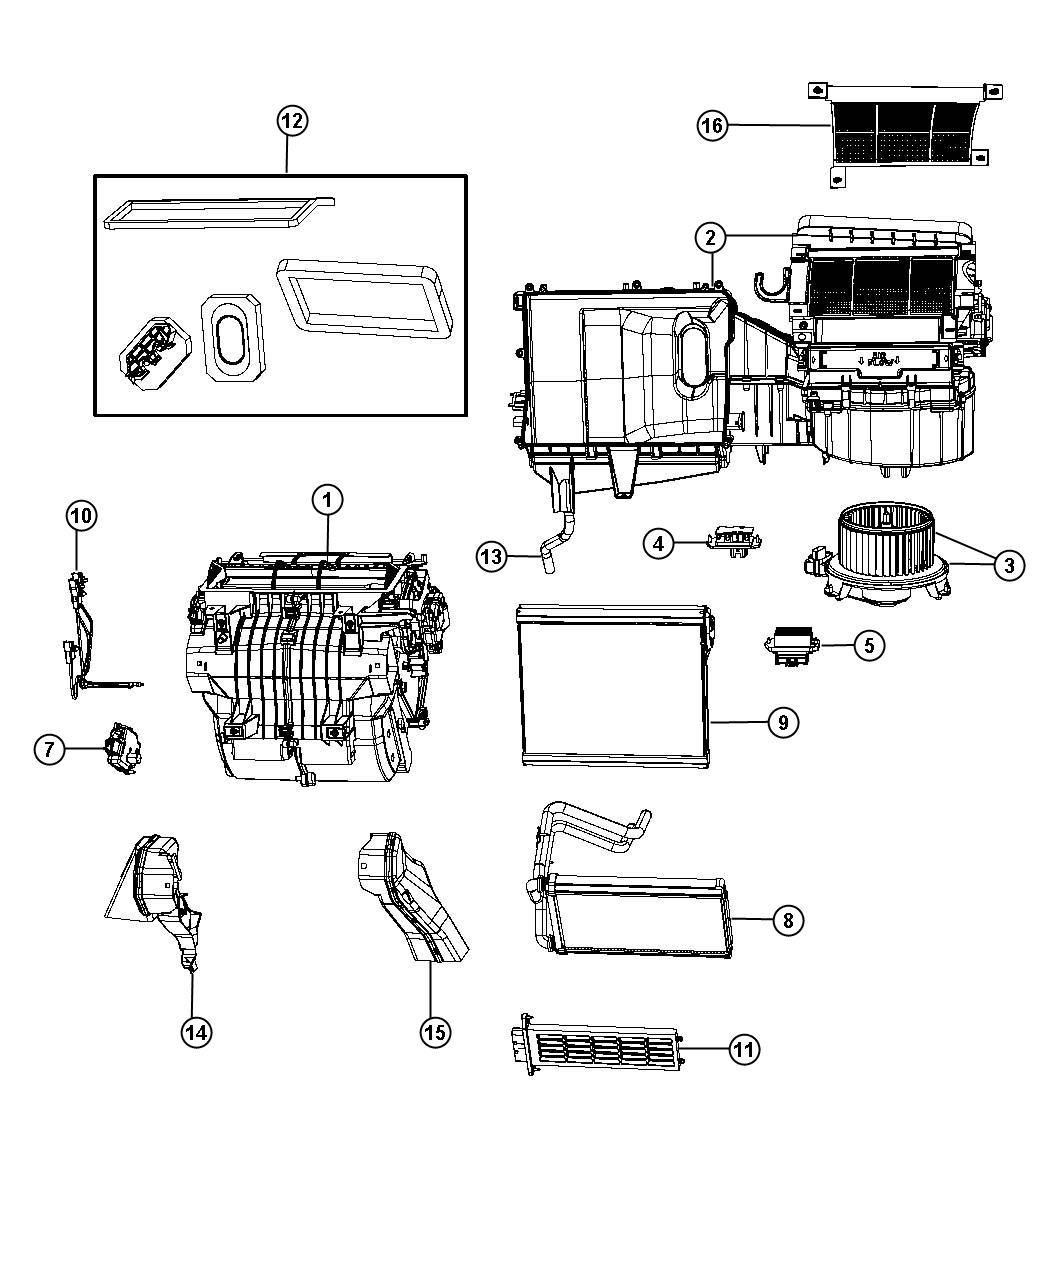 08 dodge avenger heater wiring diagram  08  free engine